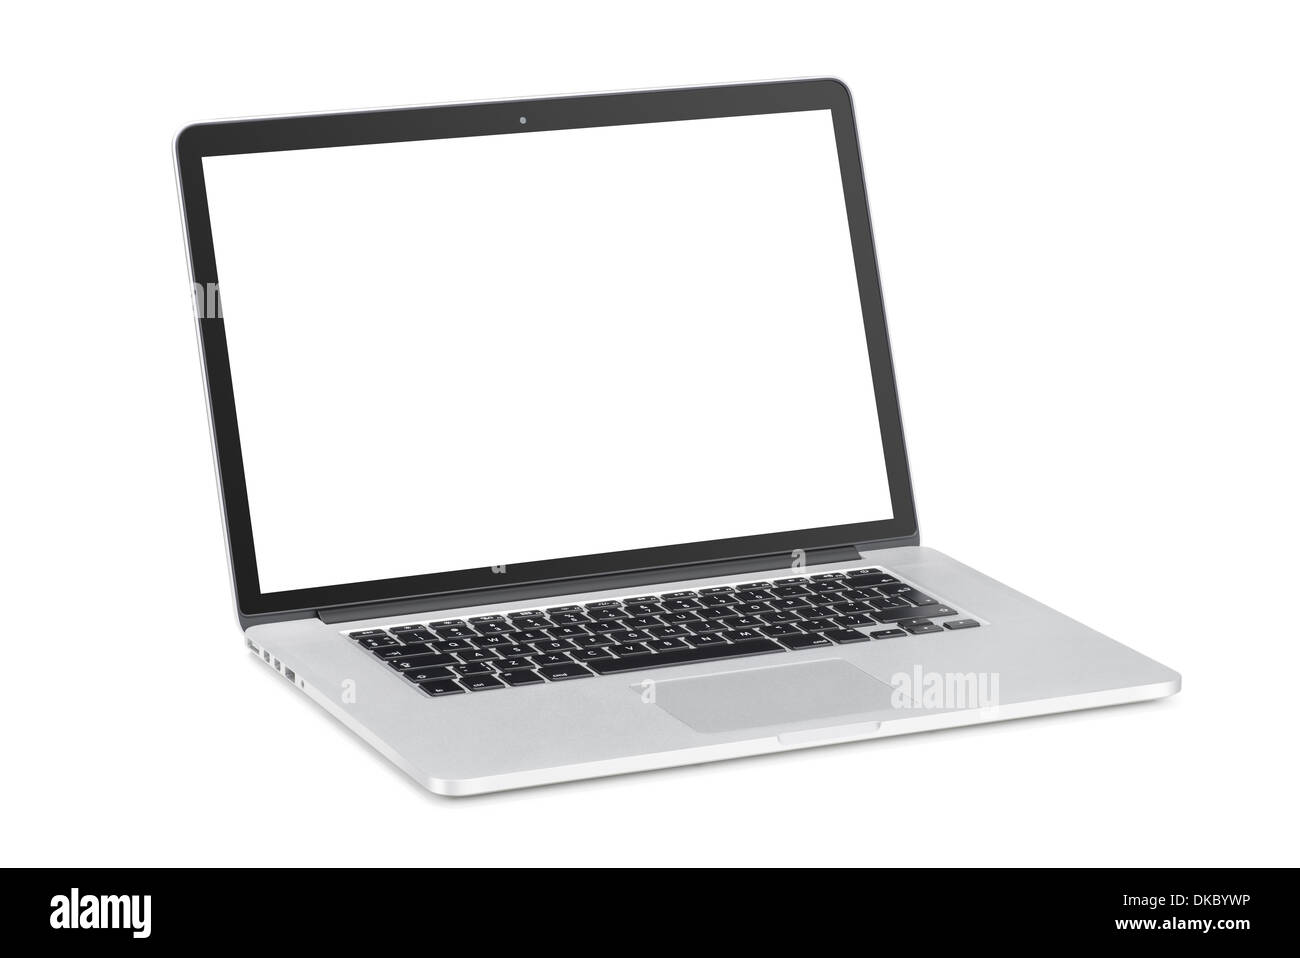 Rotated at a slight angle modern laptop with tilted back white monitor is isolated on white background. High quality. - Stock Image